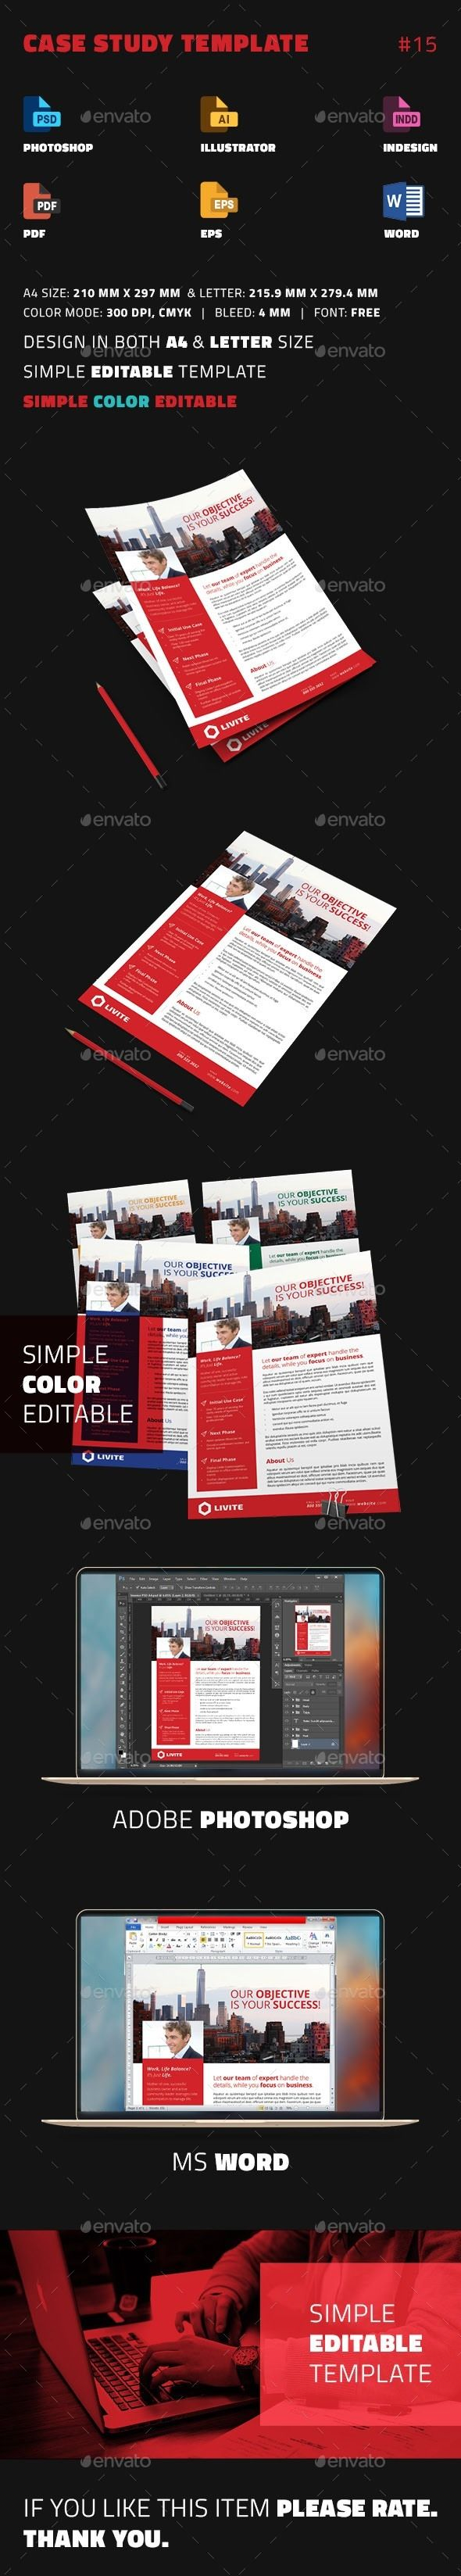 Case Study Template | Newsletter design templates, Case study design ...